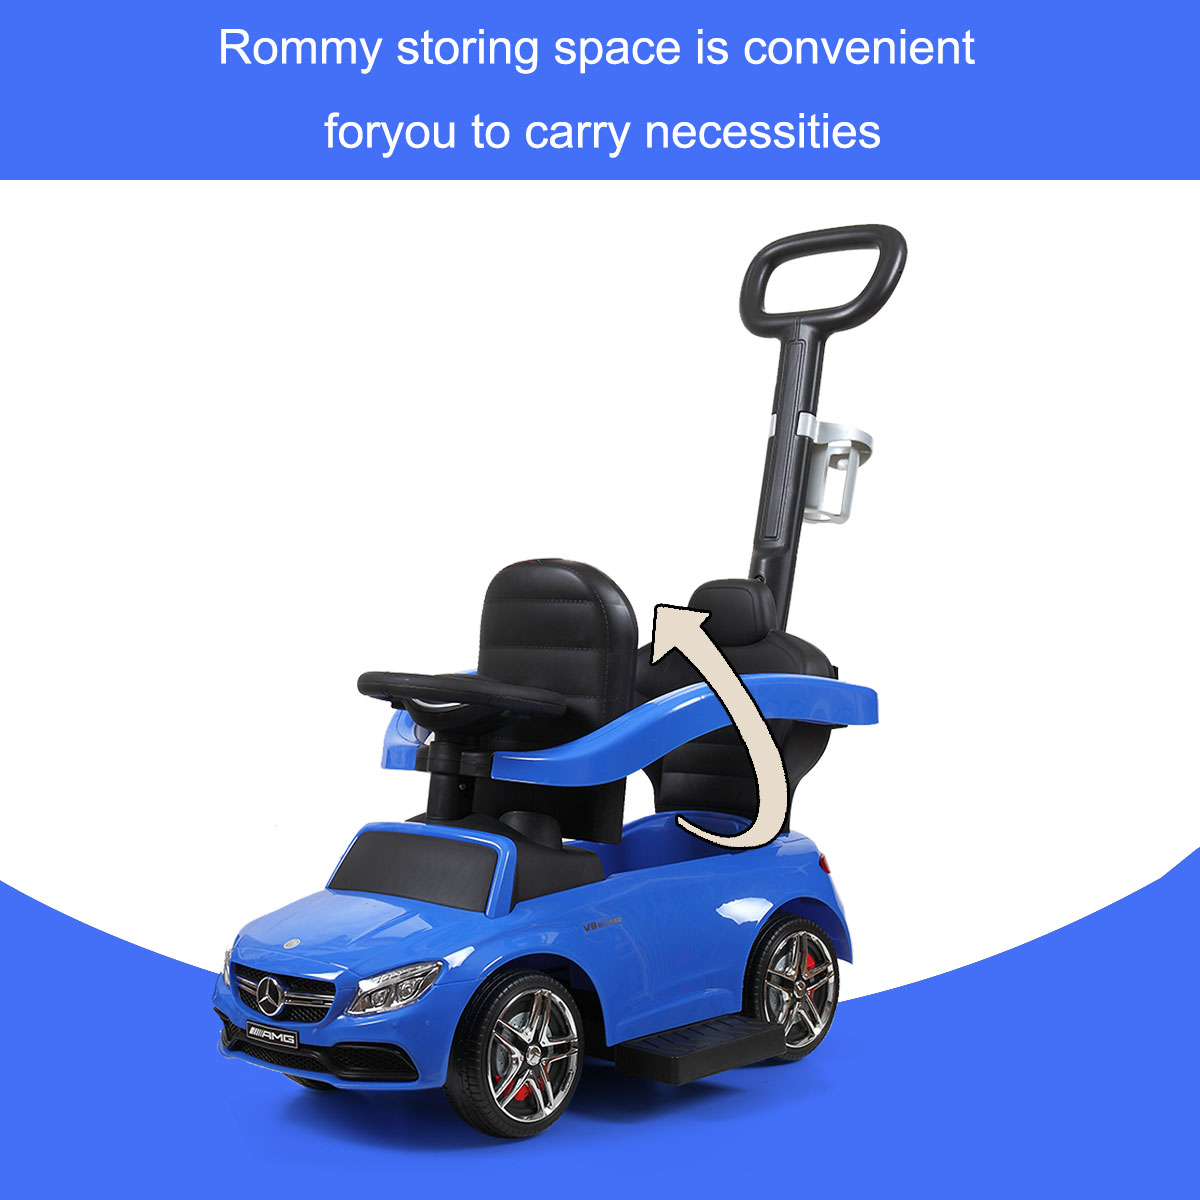 Mercedes Benz Ride On Push Car for Toddlers, Blue TH17N0346 16